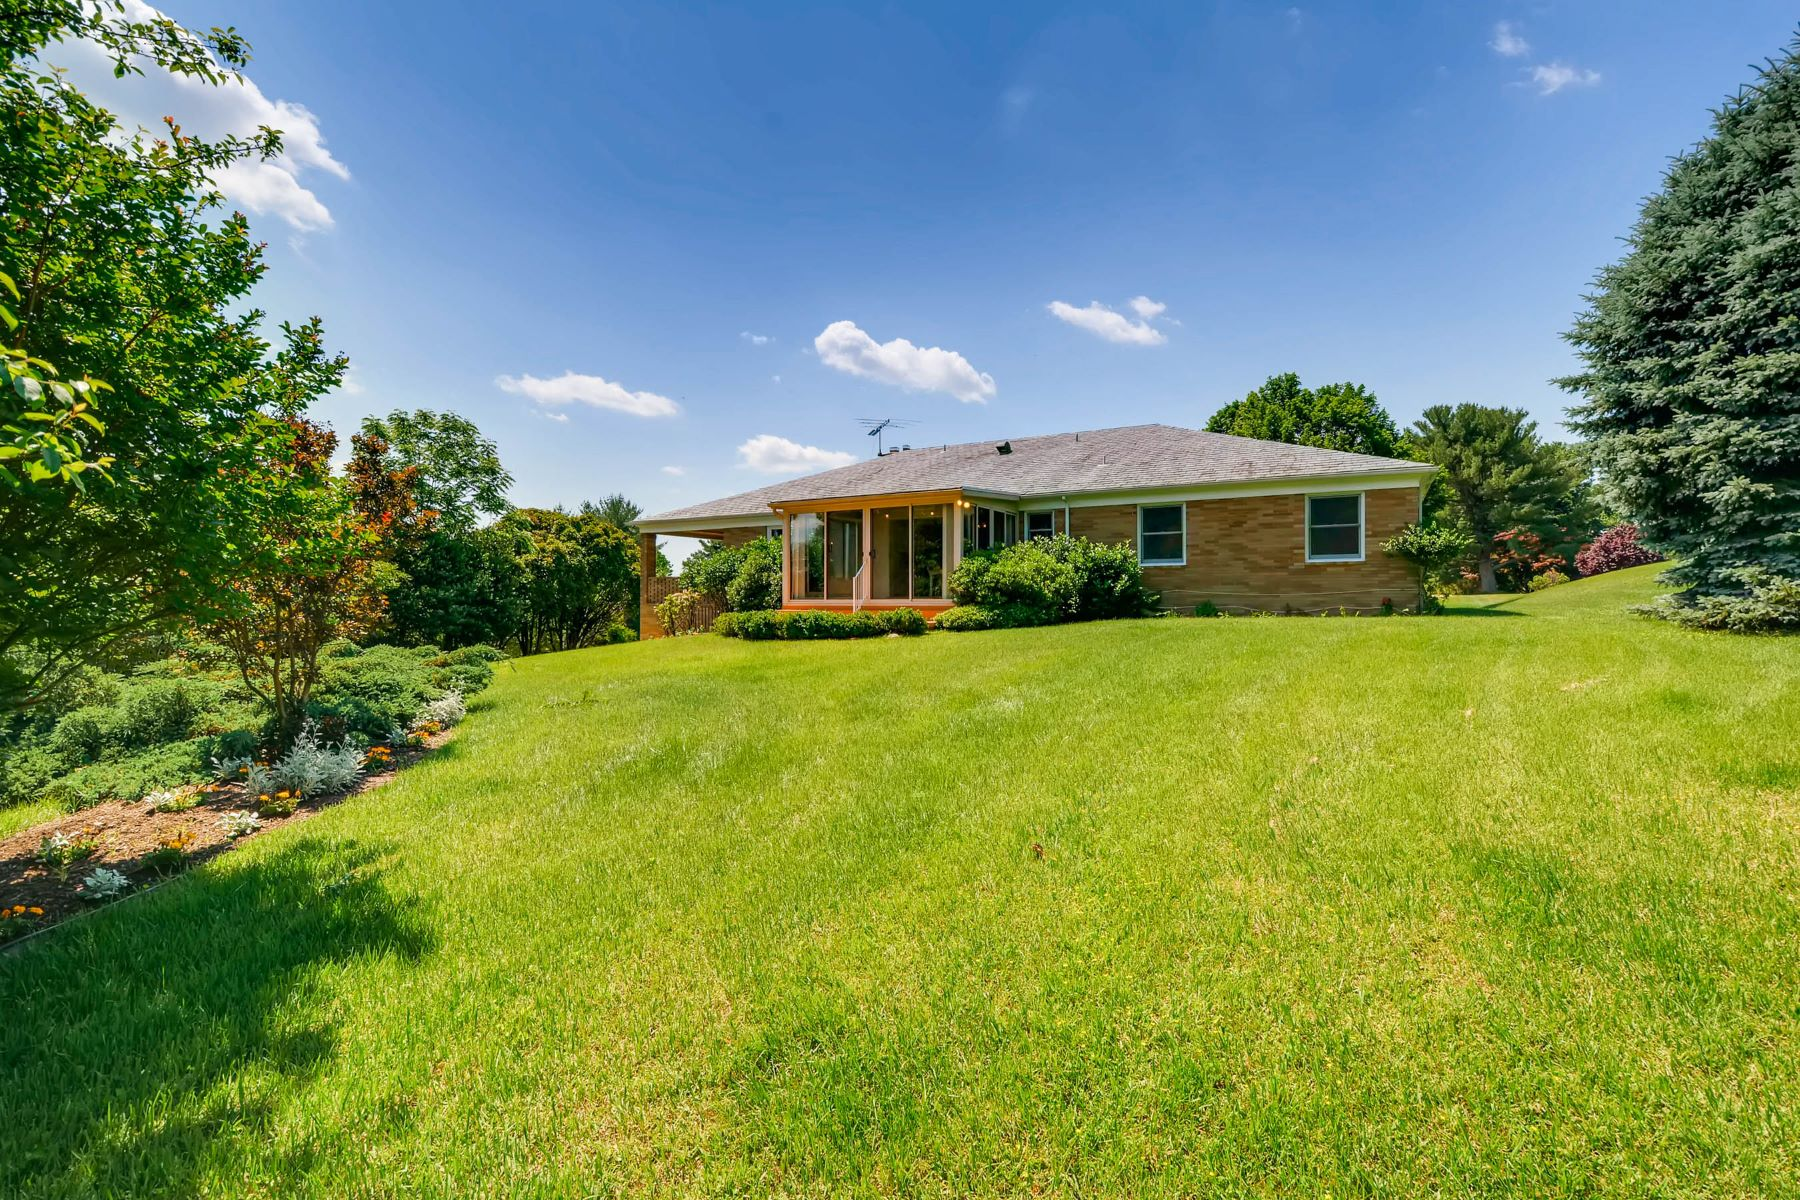 Single Family Home for Sale at 306 Lohview Terrace 306 Lochview Terrace Lutherville Timonium, Maryland 21093 United States